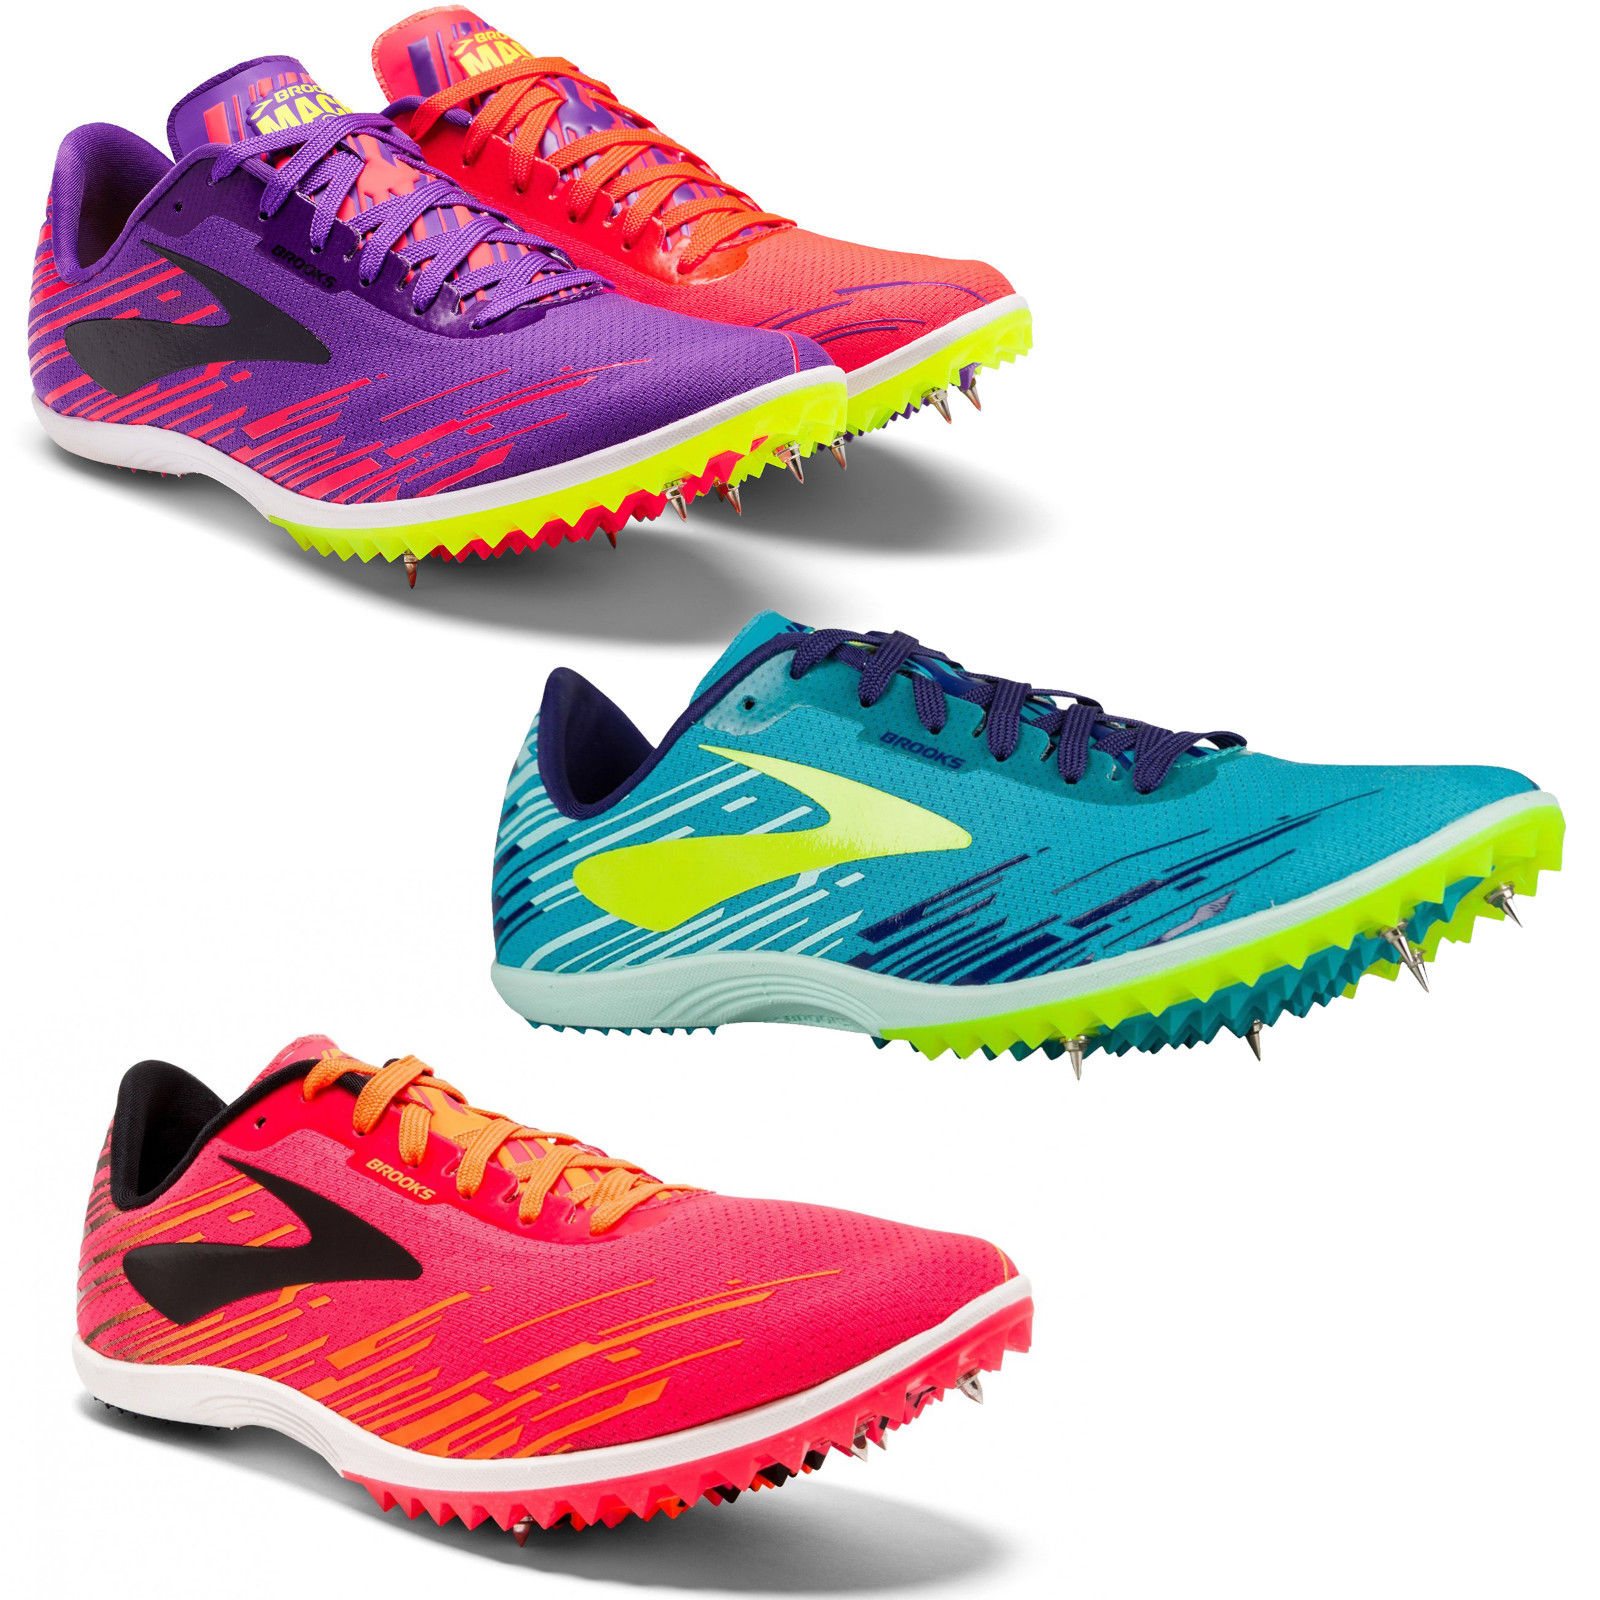 b85c2368493df Details about Womens Brooks Mach 18 Spike Running Shoes Trainers Sizes 4 to  8 - Medium